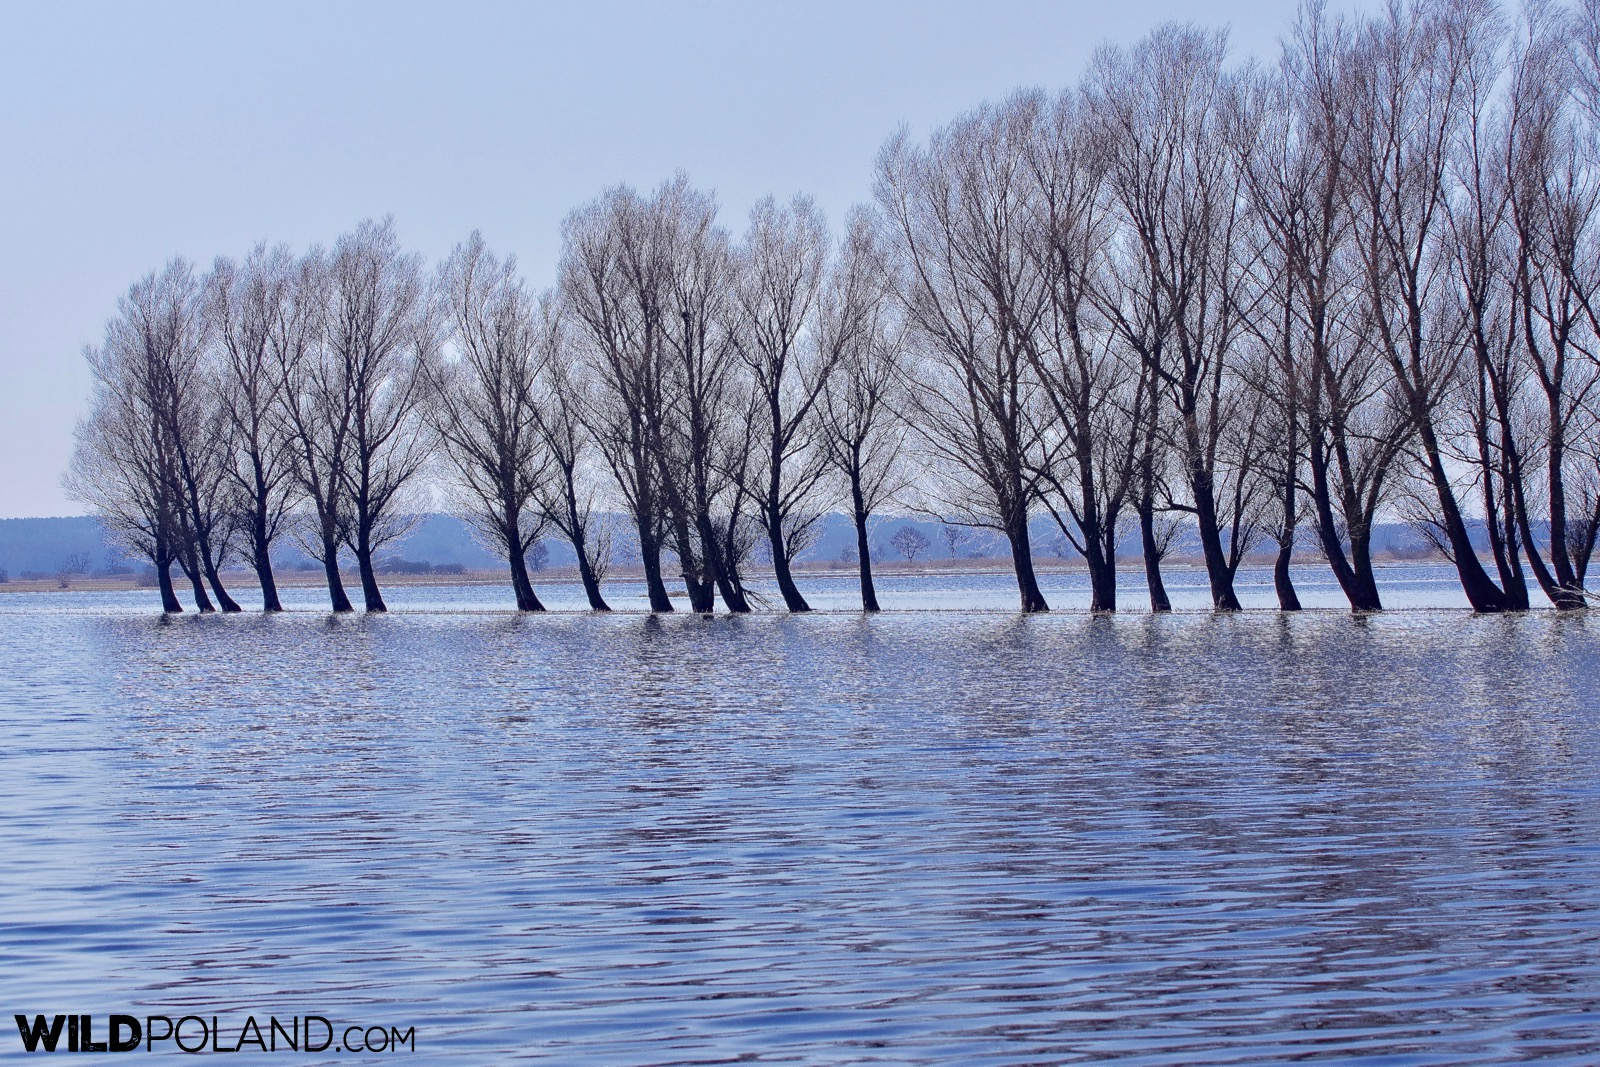 Spring and enxtensive floodings at the Biebrza Marshes, photo by Andrzej Petryna